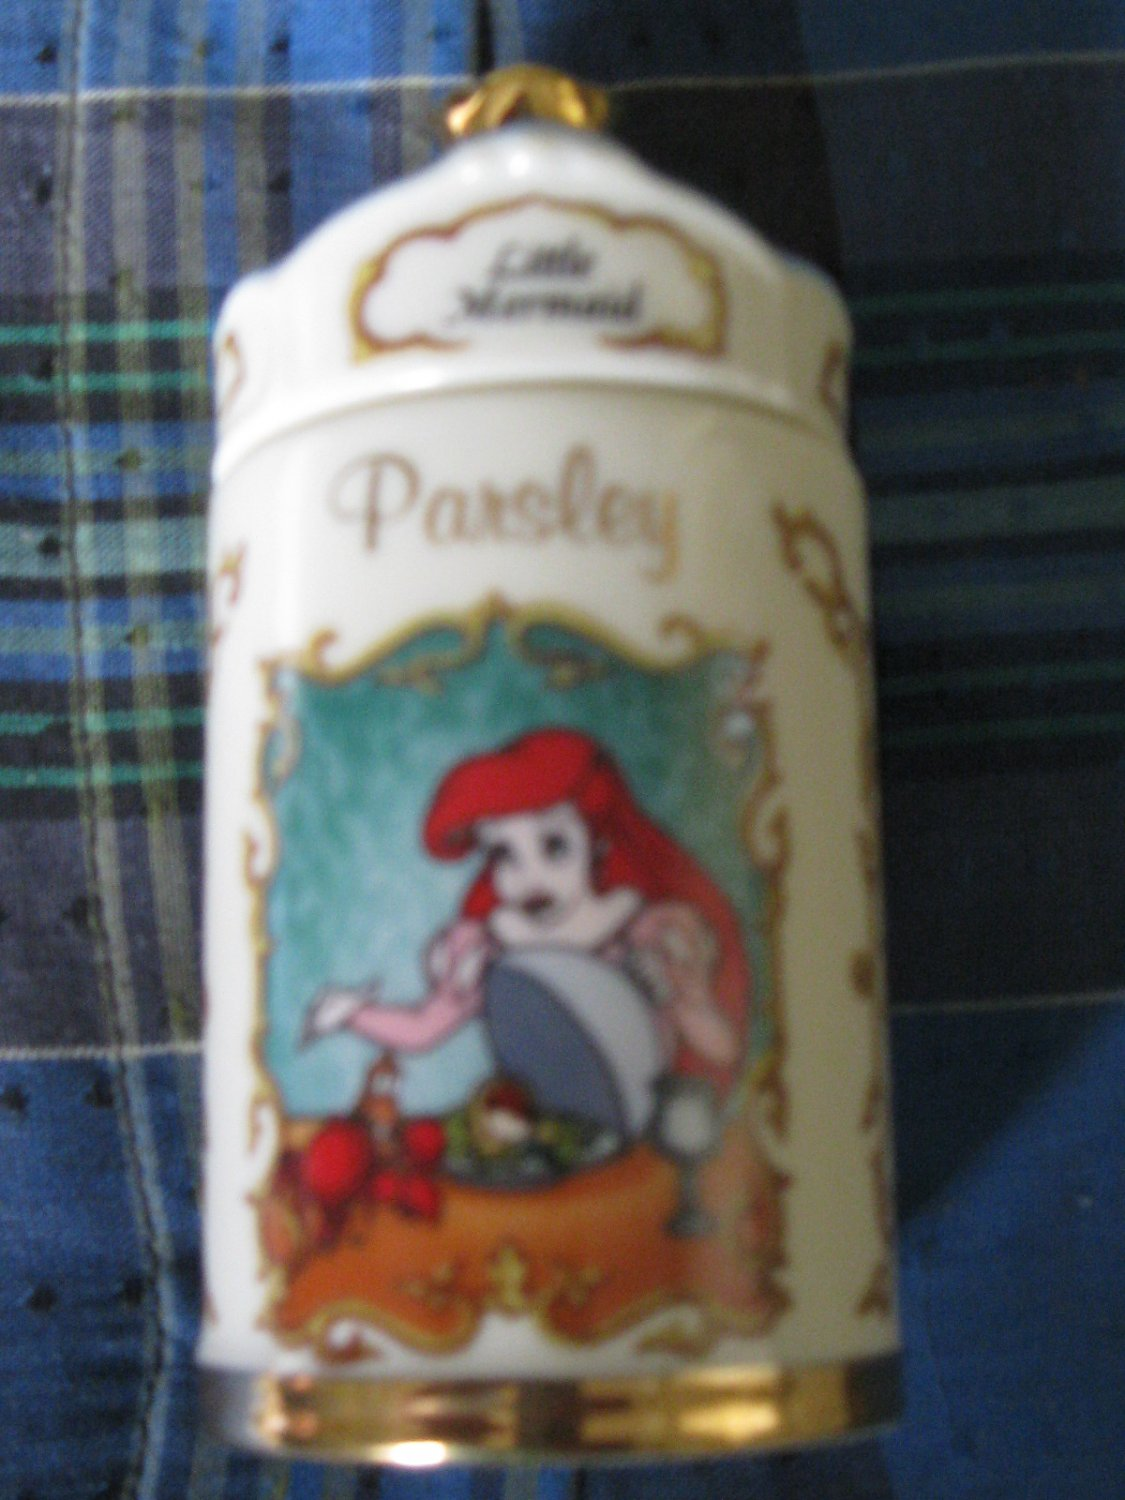 Awesome Disney Little Mermaid Parsley Spice Jar Lenox 1995 Collection